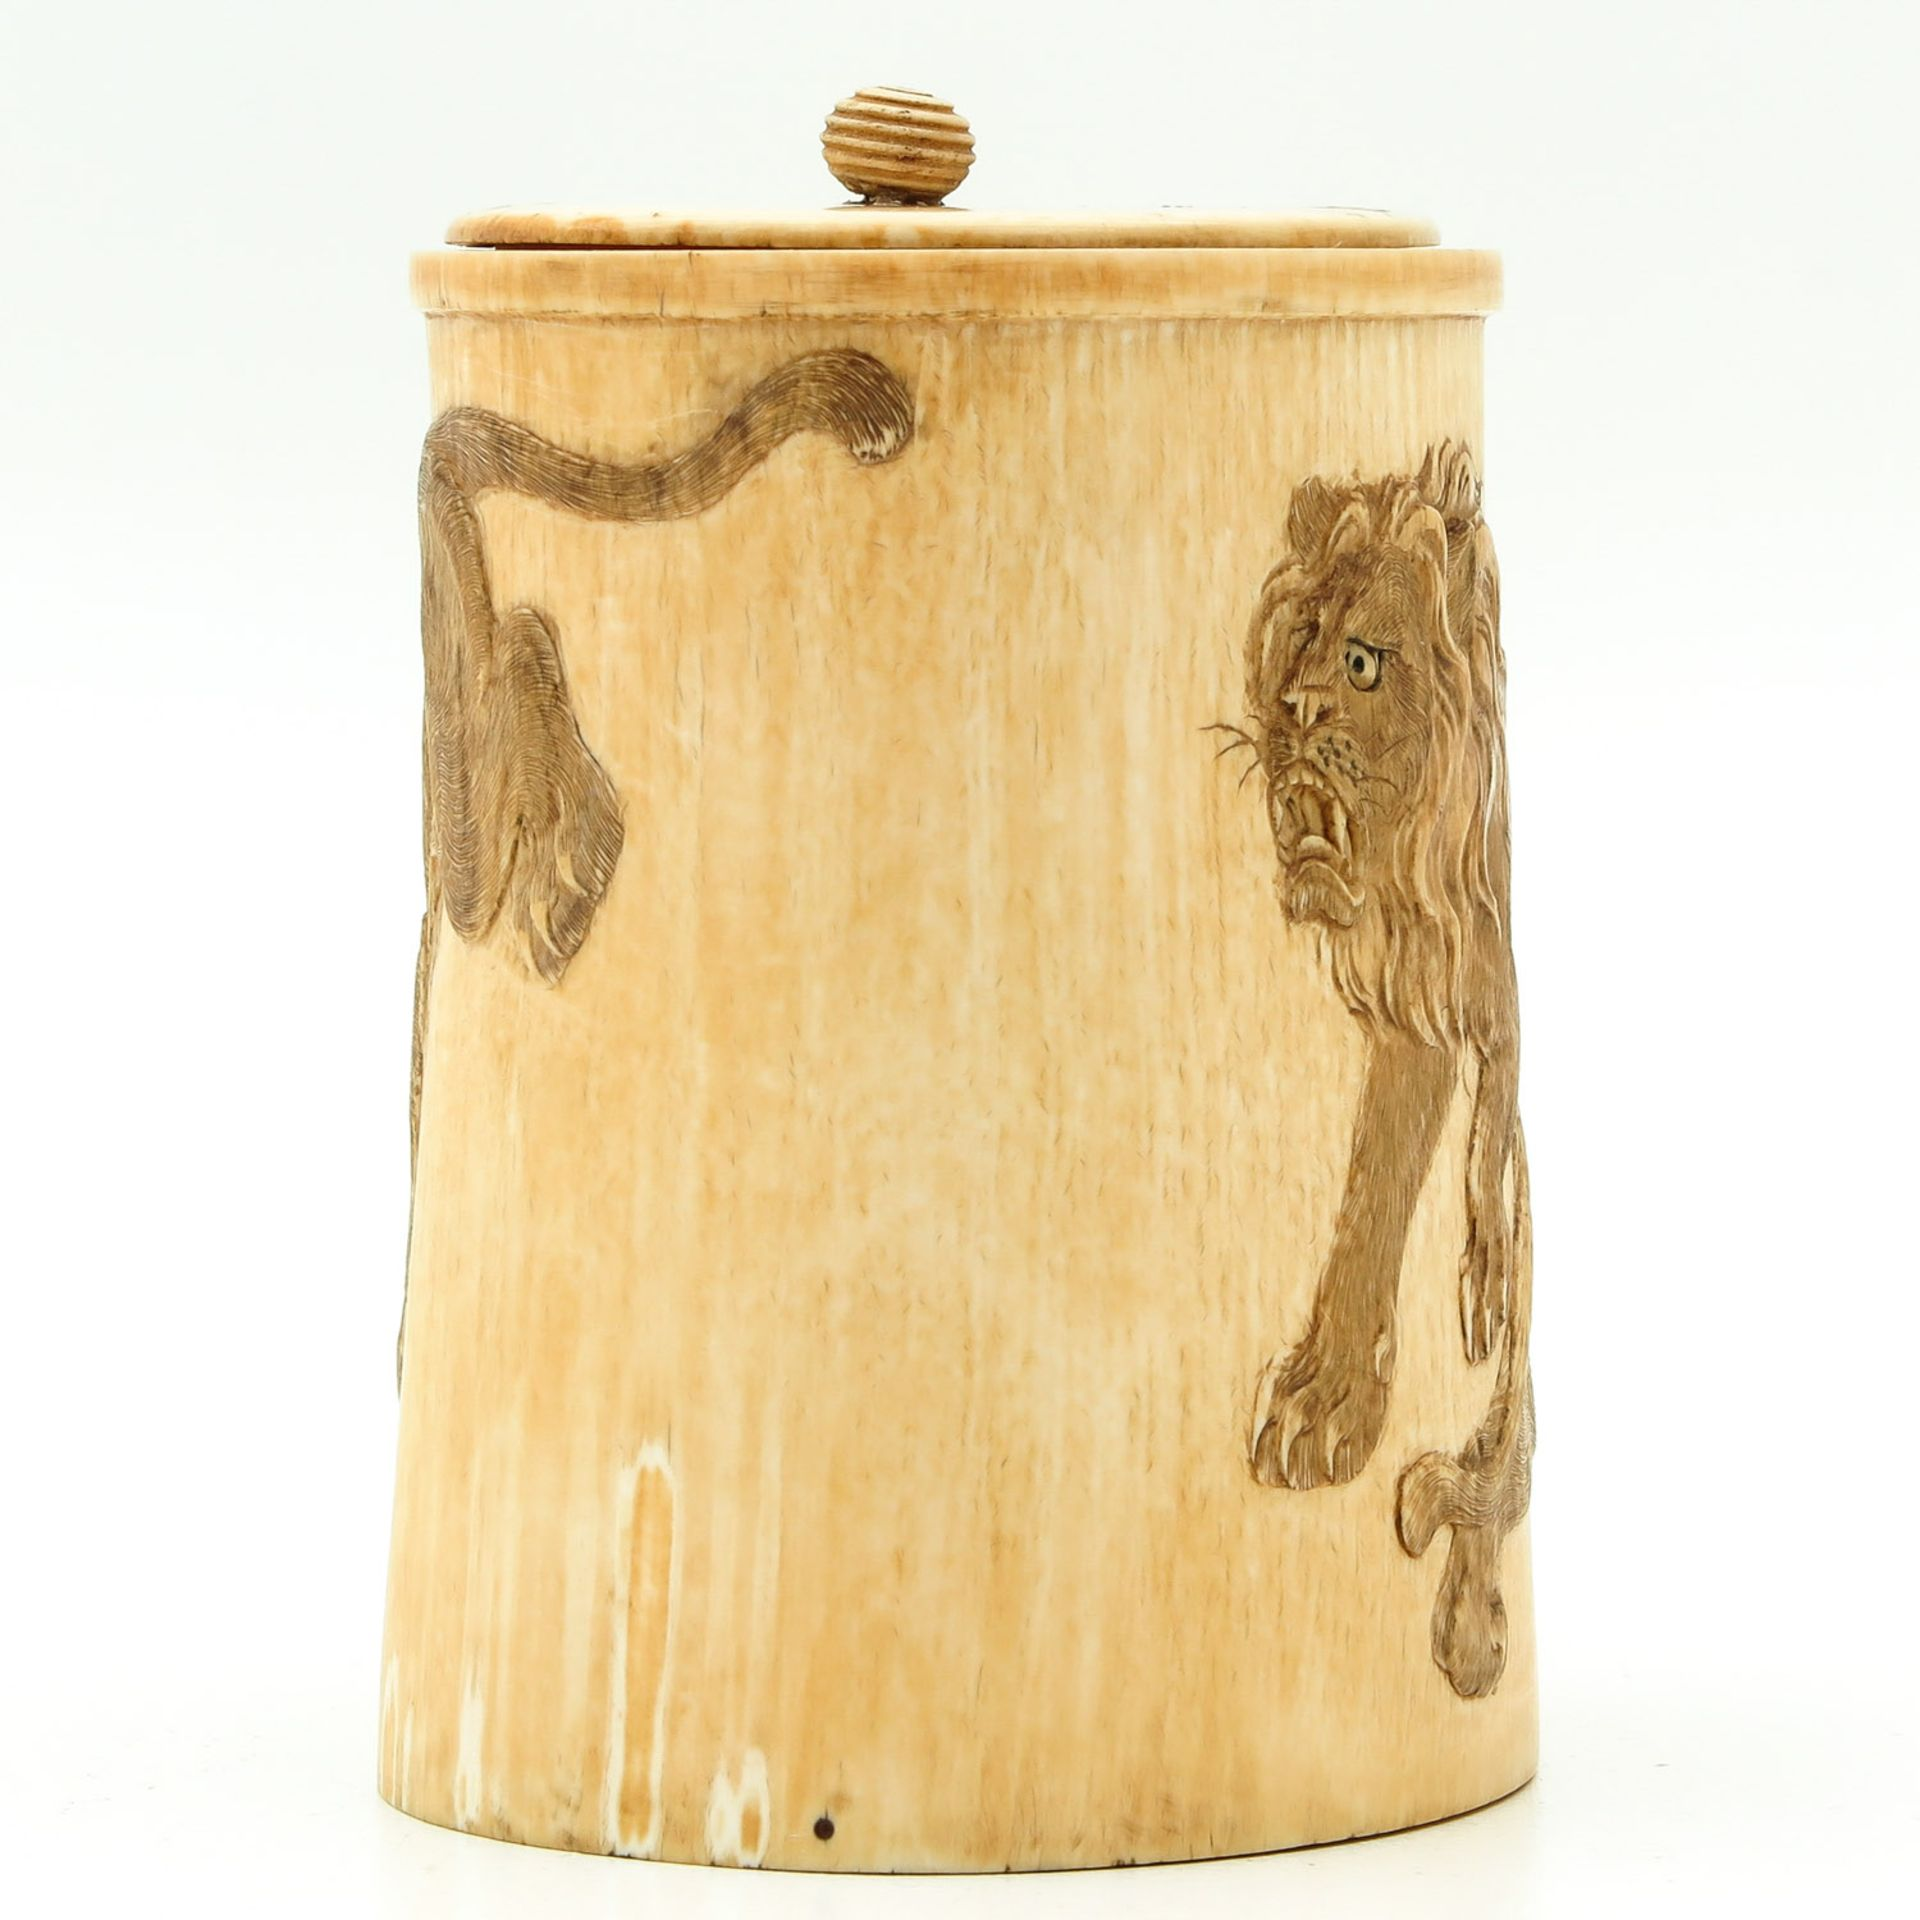 Los 7052 - A Carved Brushpot with Cover